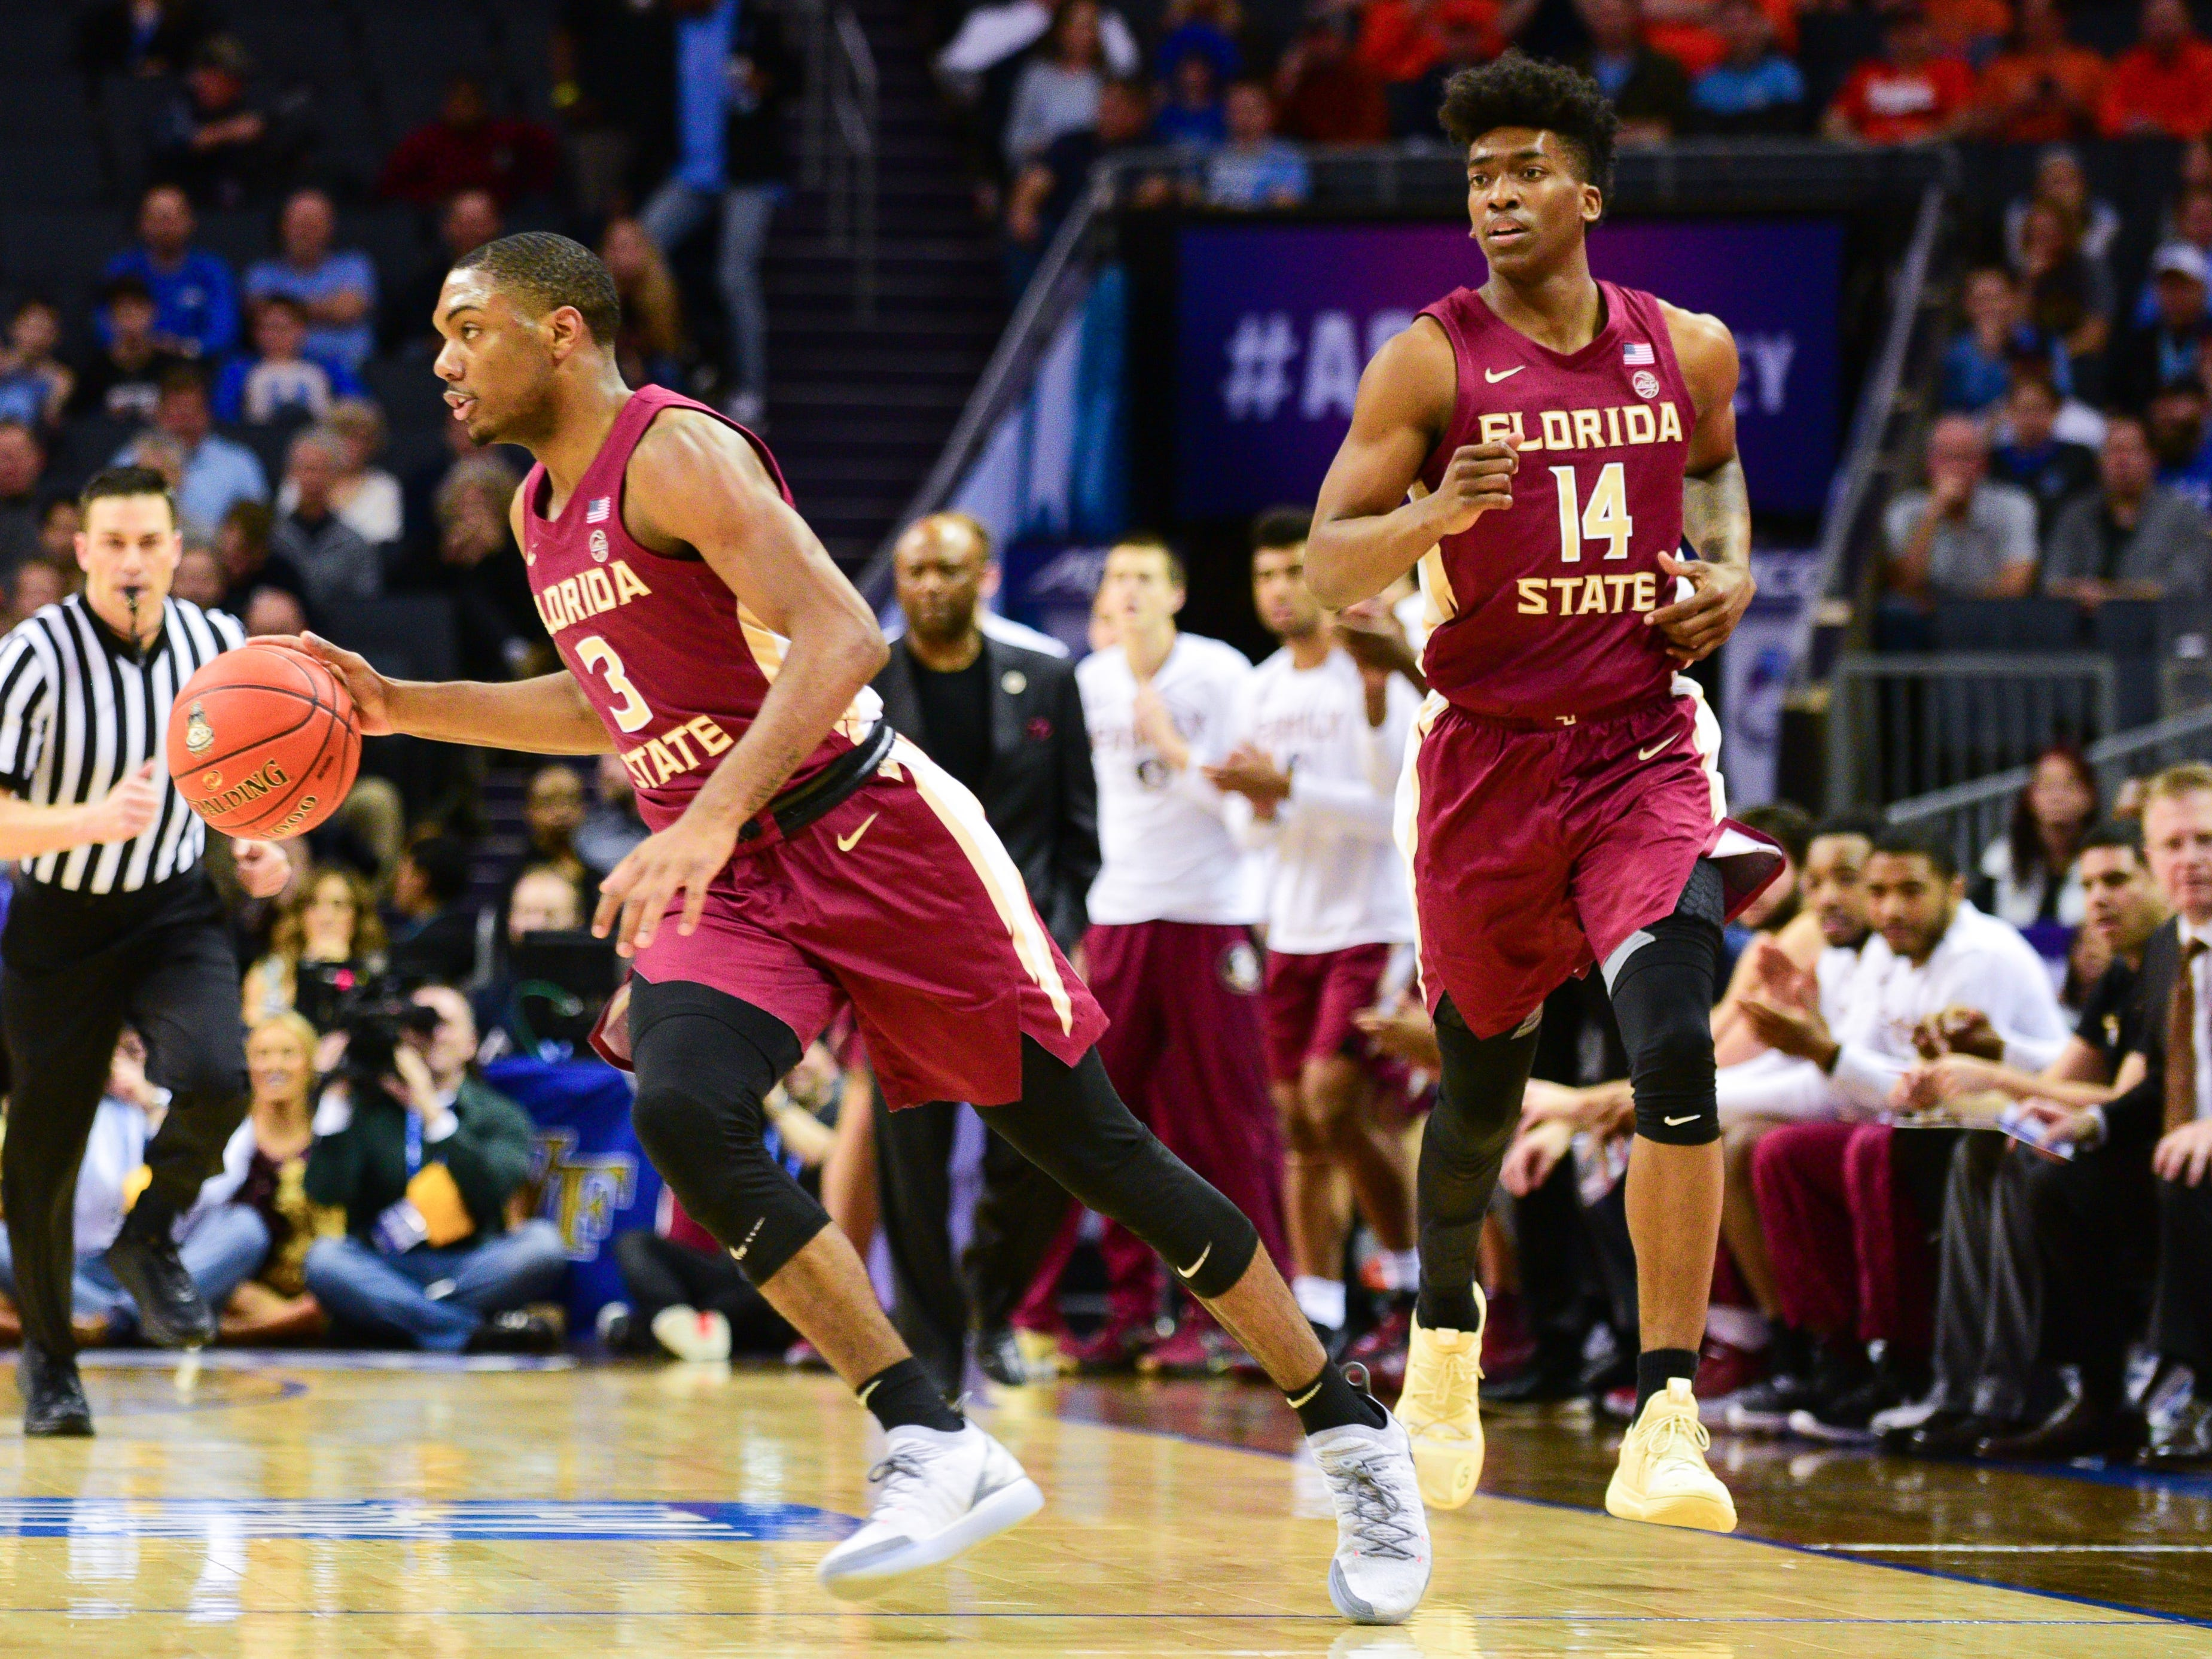 Florida State junior guard Trent Forrestt, left, and senior guard Terance Mann, right, charge the court together during the first half of the ACC Tournament Semifinals at the Spectrum Center in Charlotte on Friday.